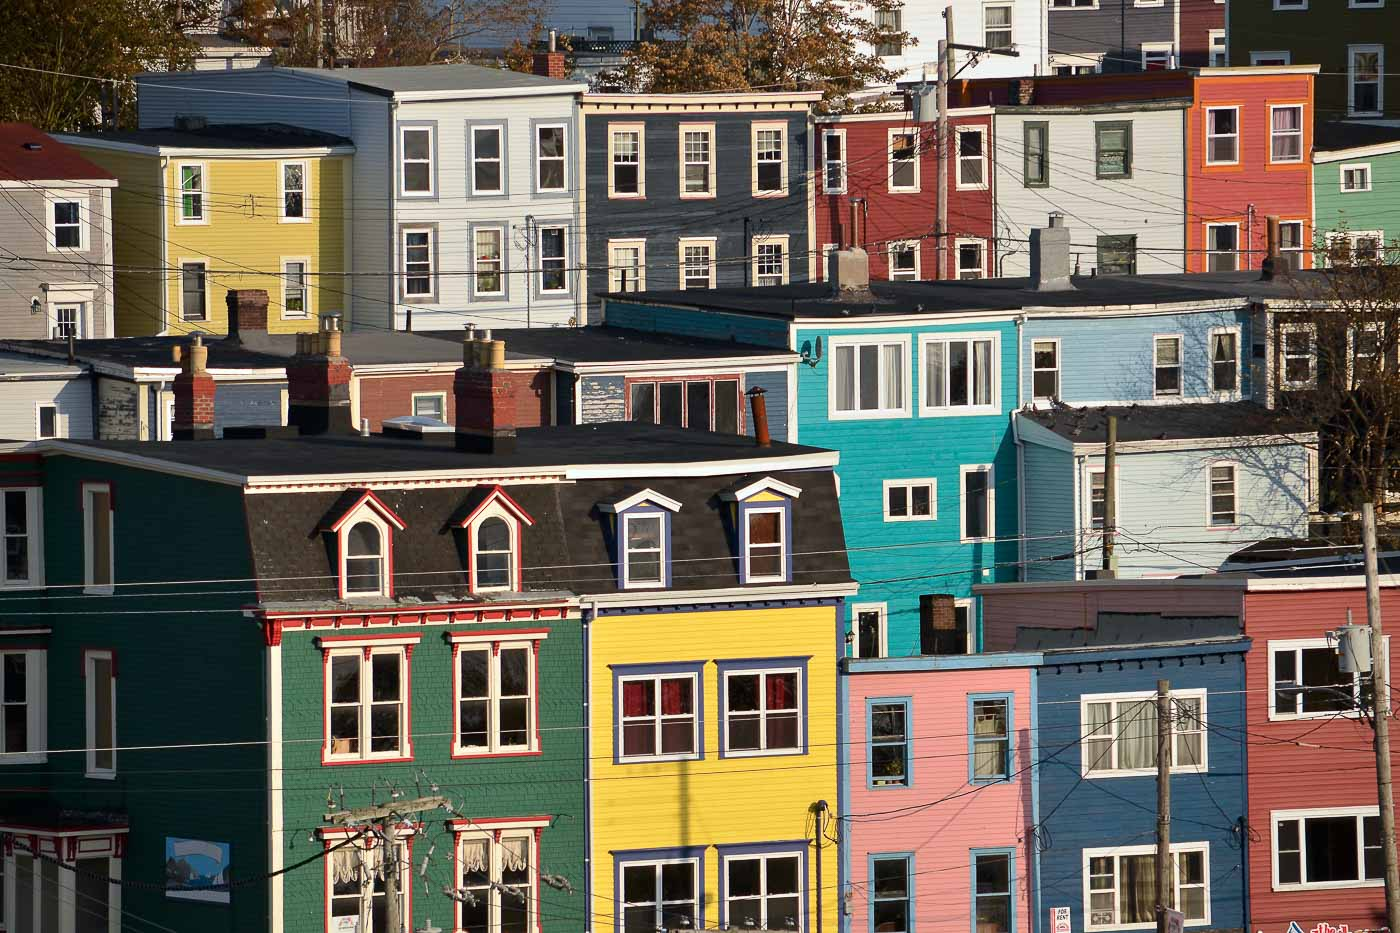 Colourful Cities by Zayah World - St John, Canada